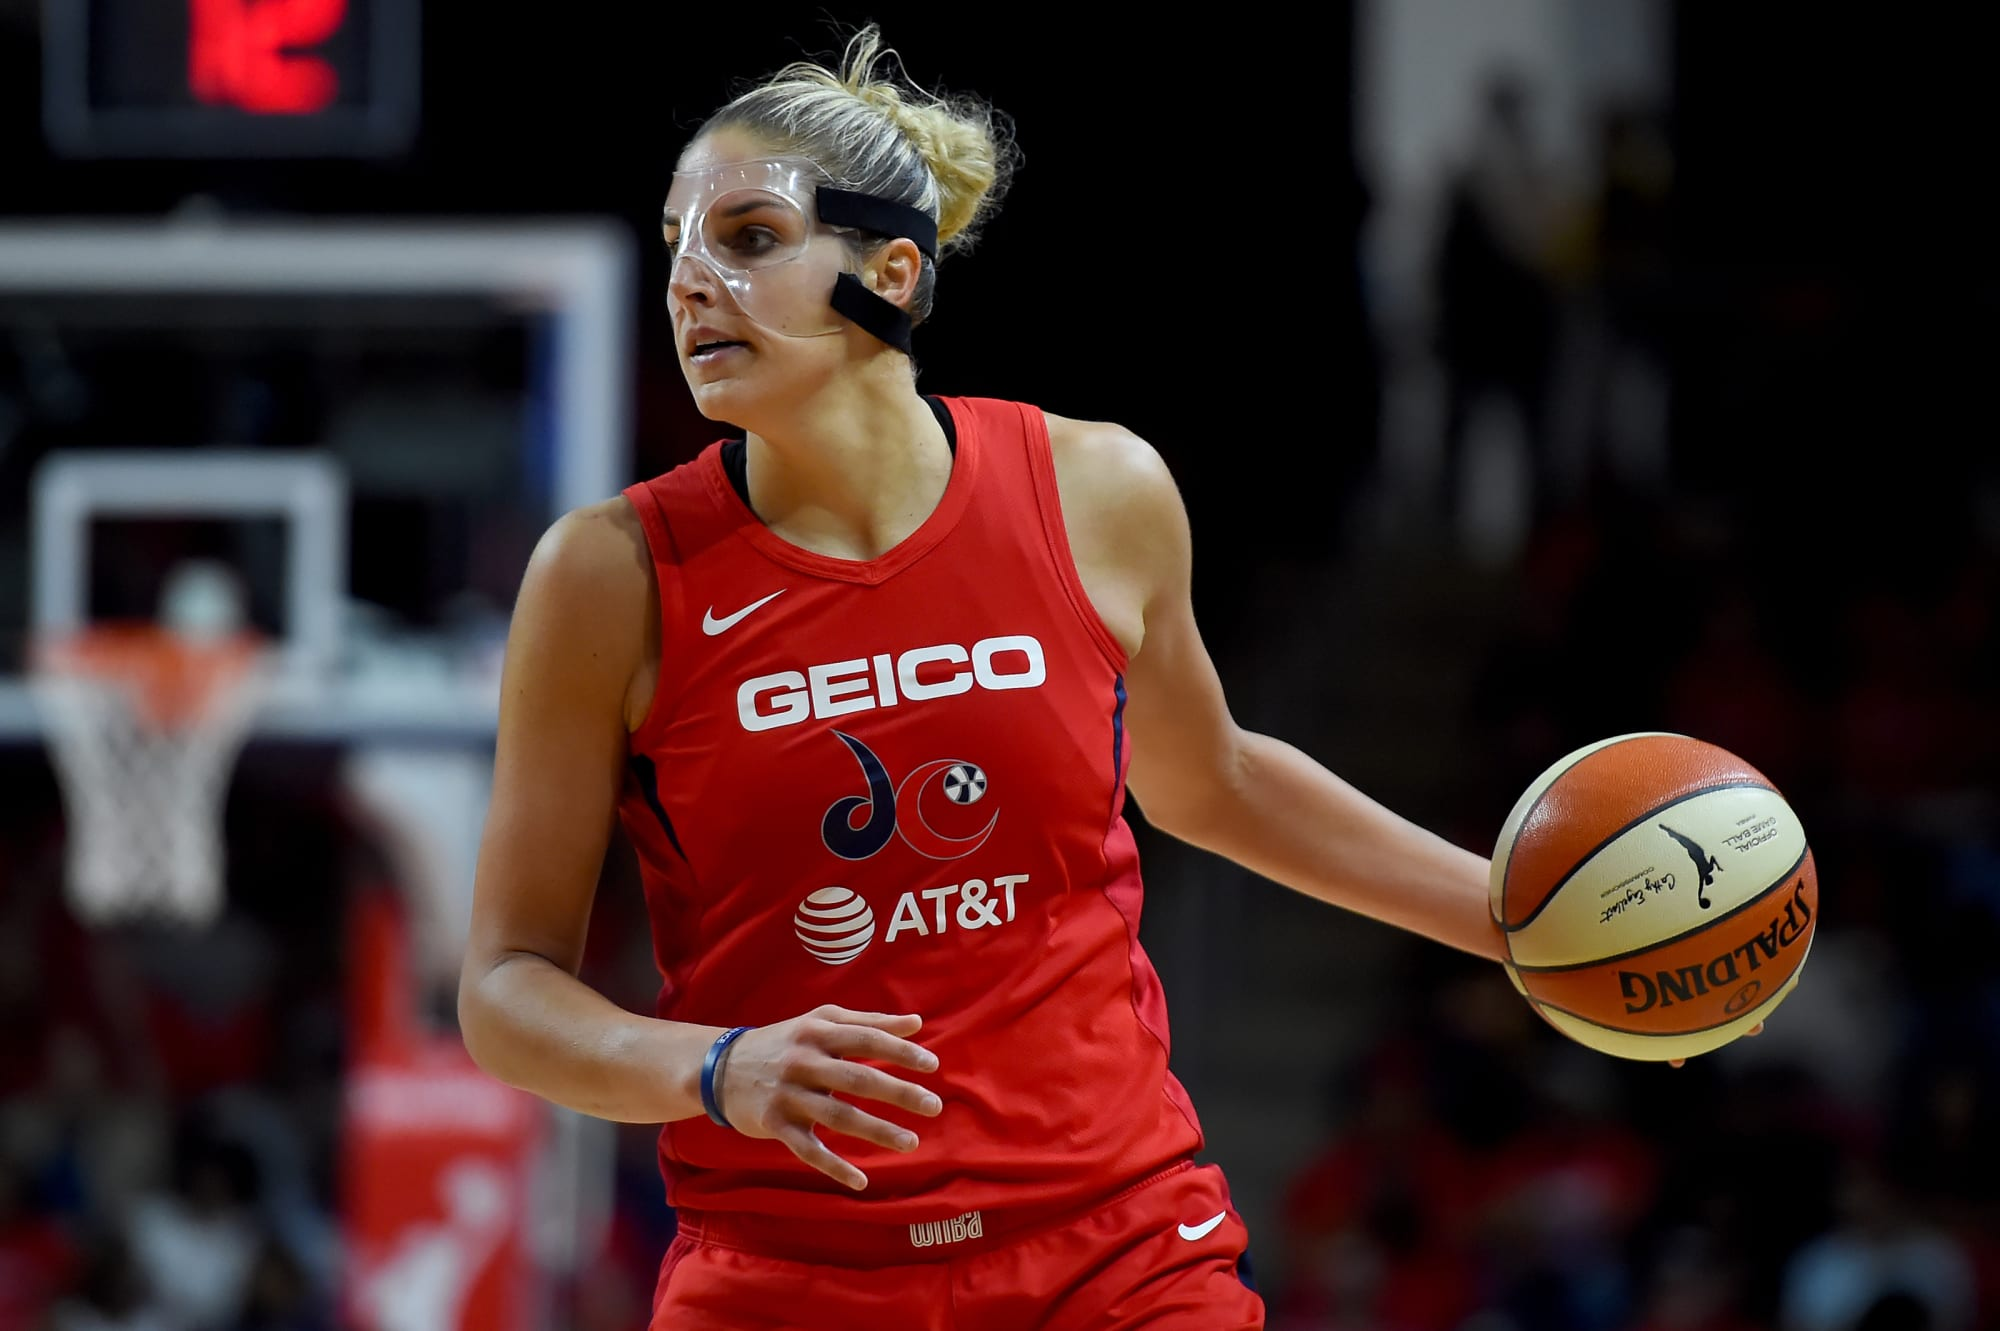 Elena Delle Donne excited for return to WNBA, Olympics and 'normalcy'